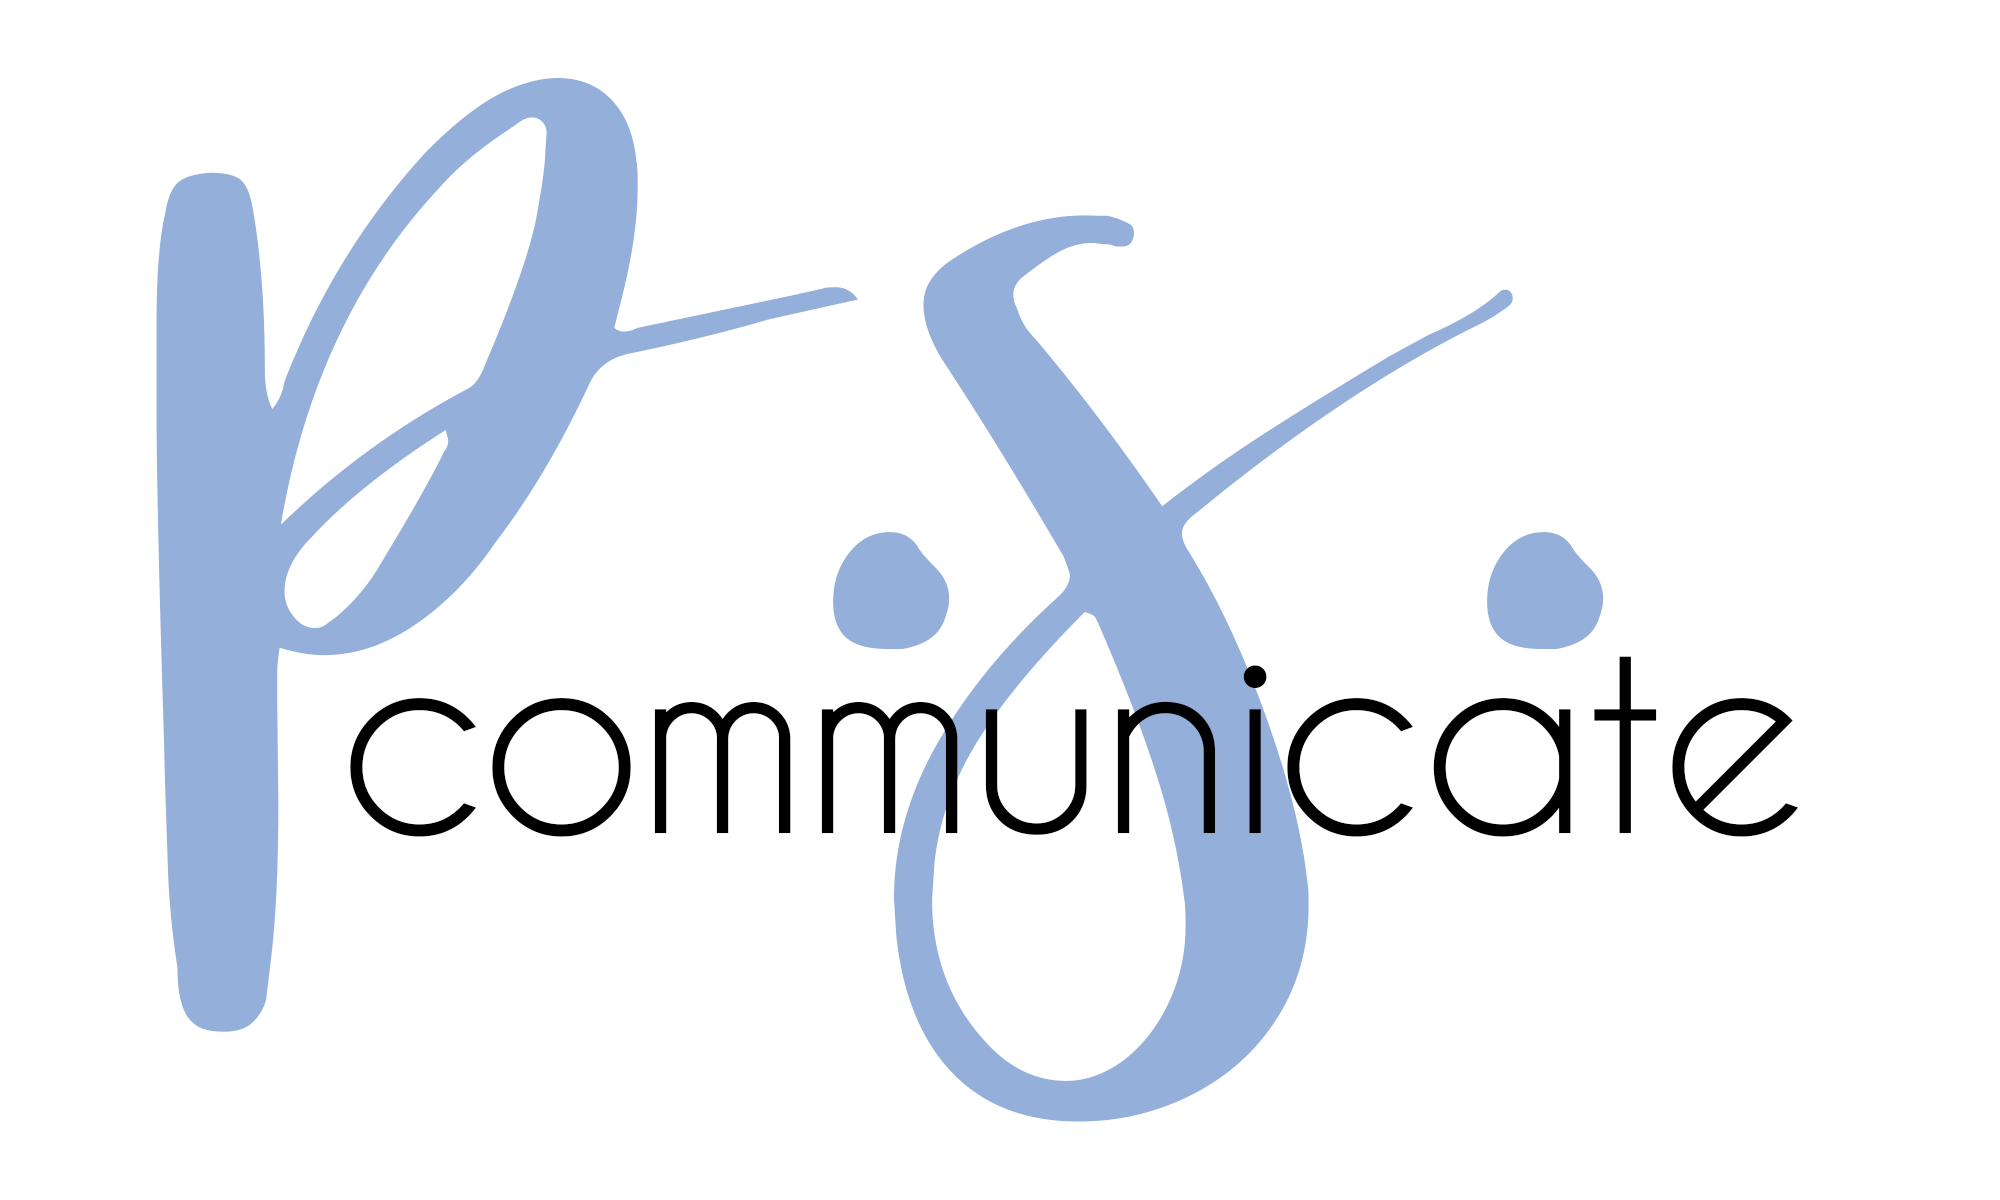 ps comm logo final.png